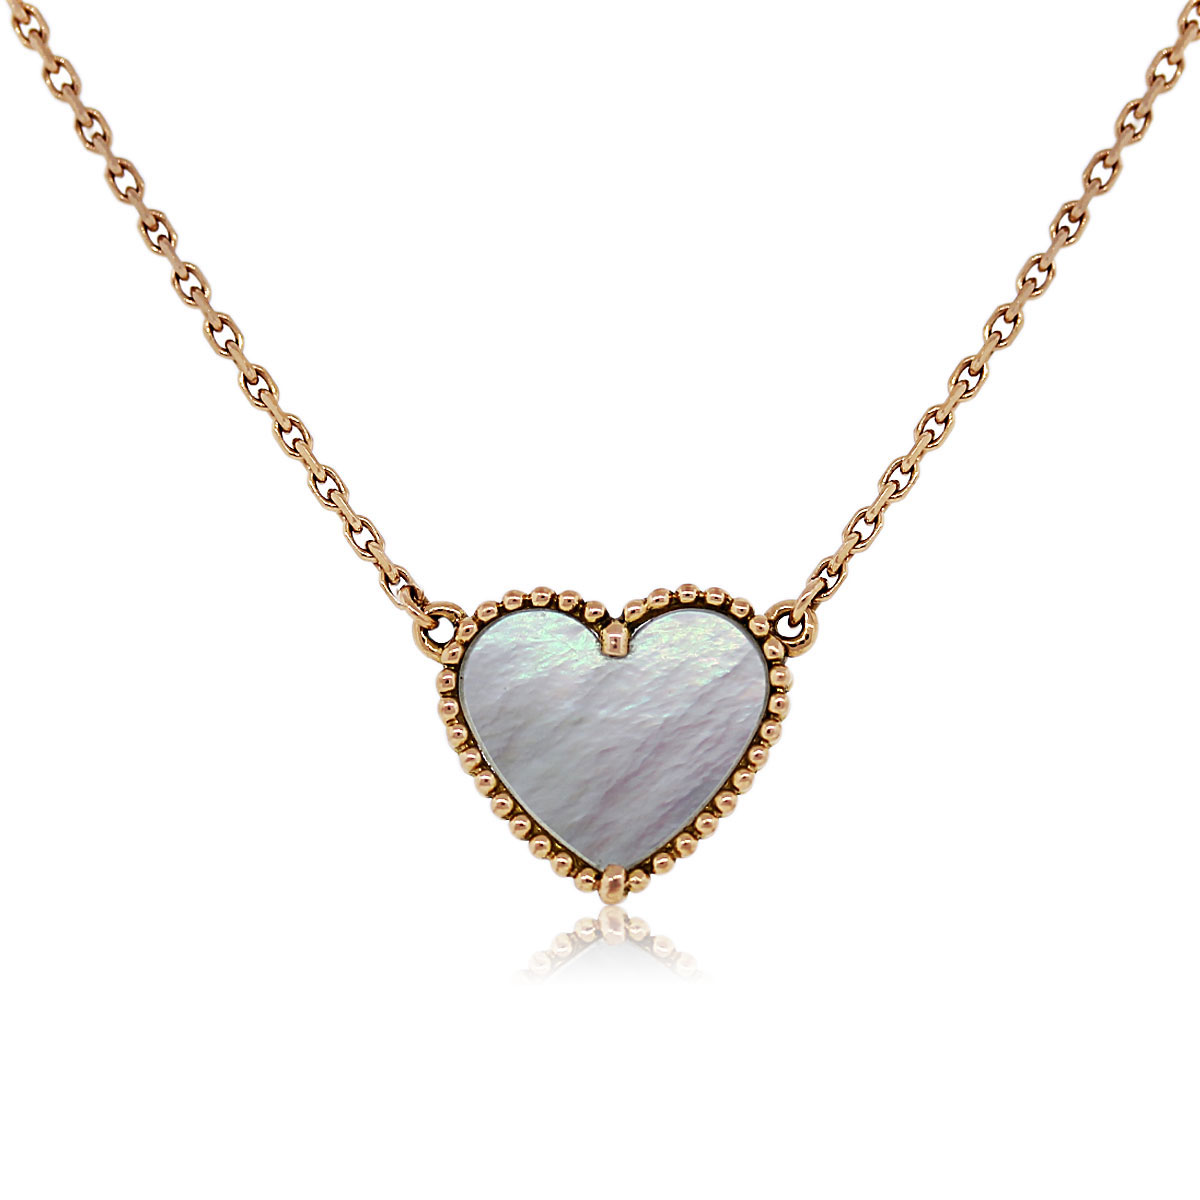 Mother of Pearl Heart Shaped Pendant